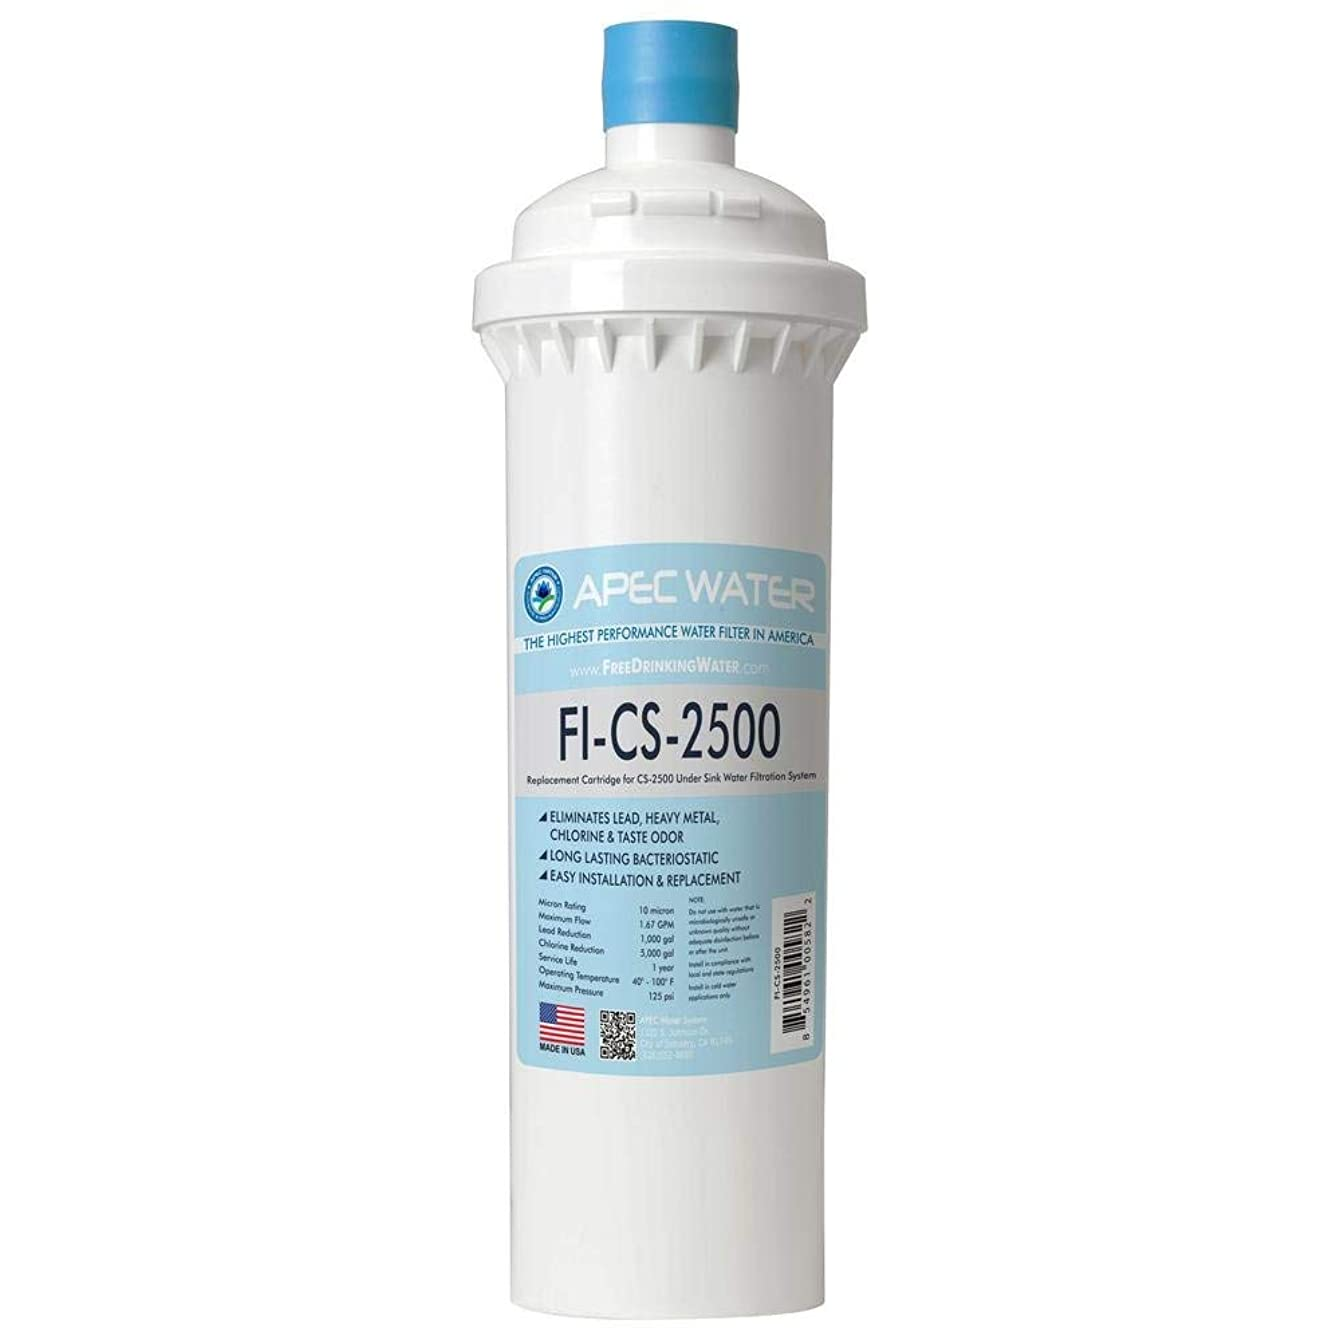 APEC FI-CS-2500 Replacement Filter for CS-2500 Water Filtration System